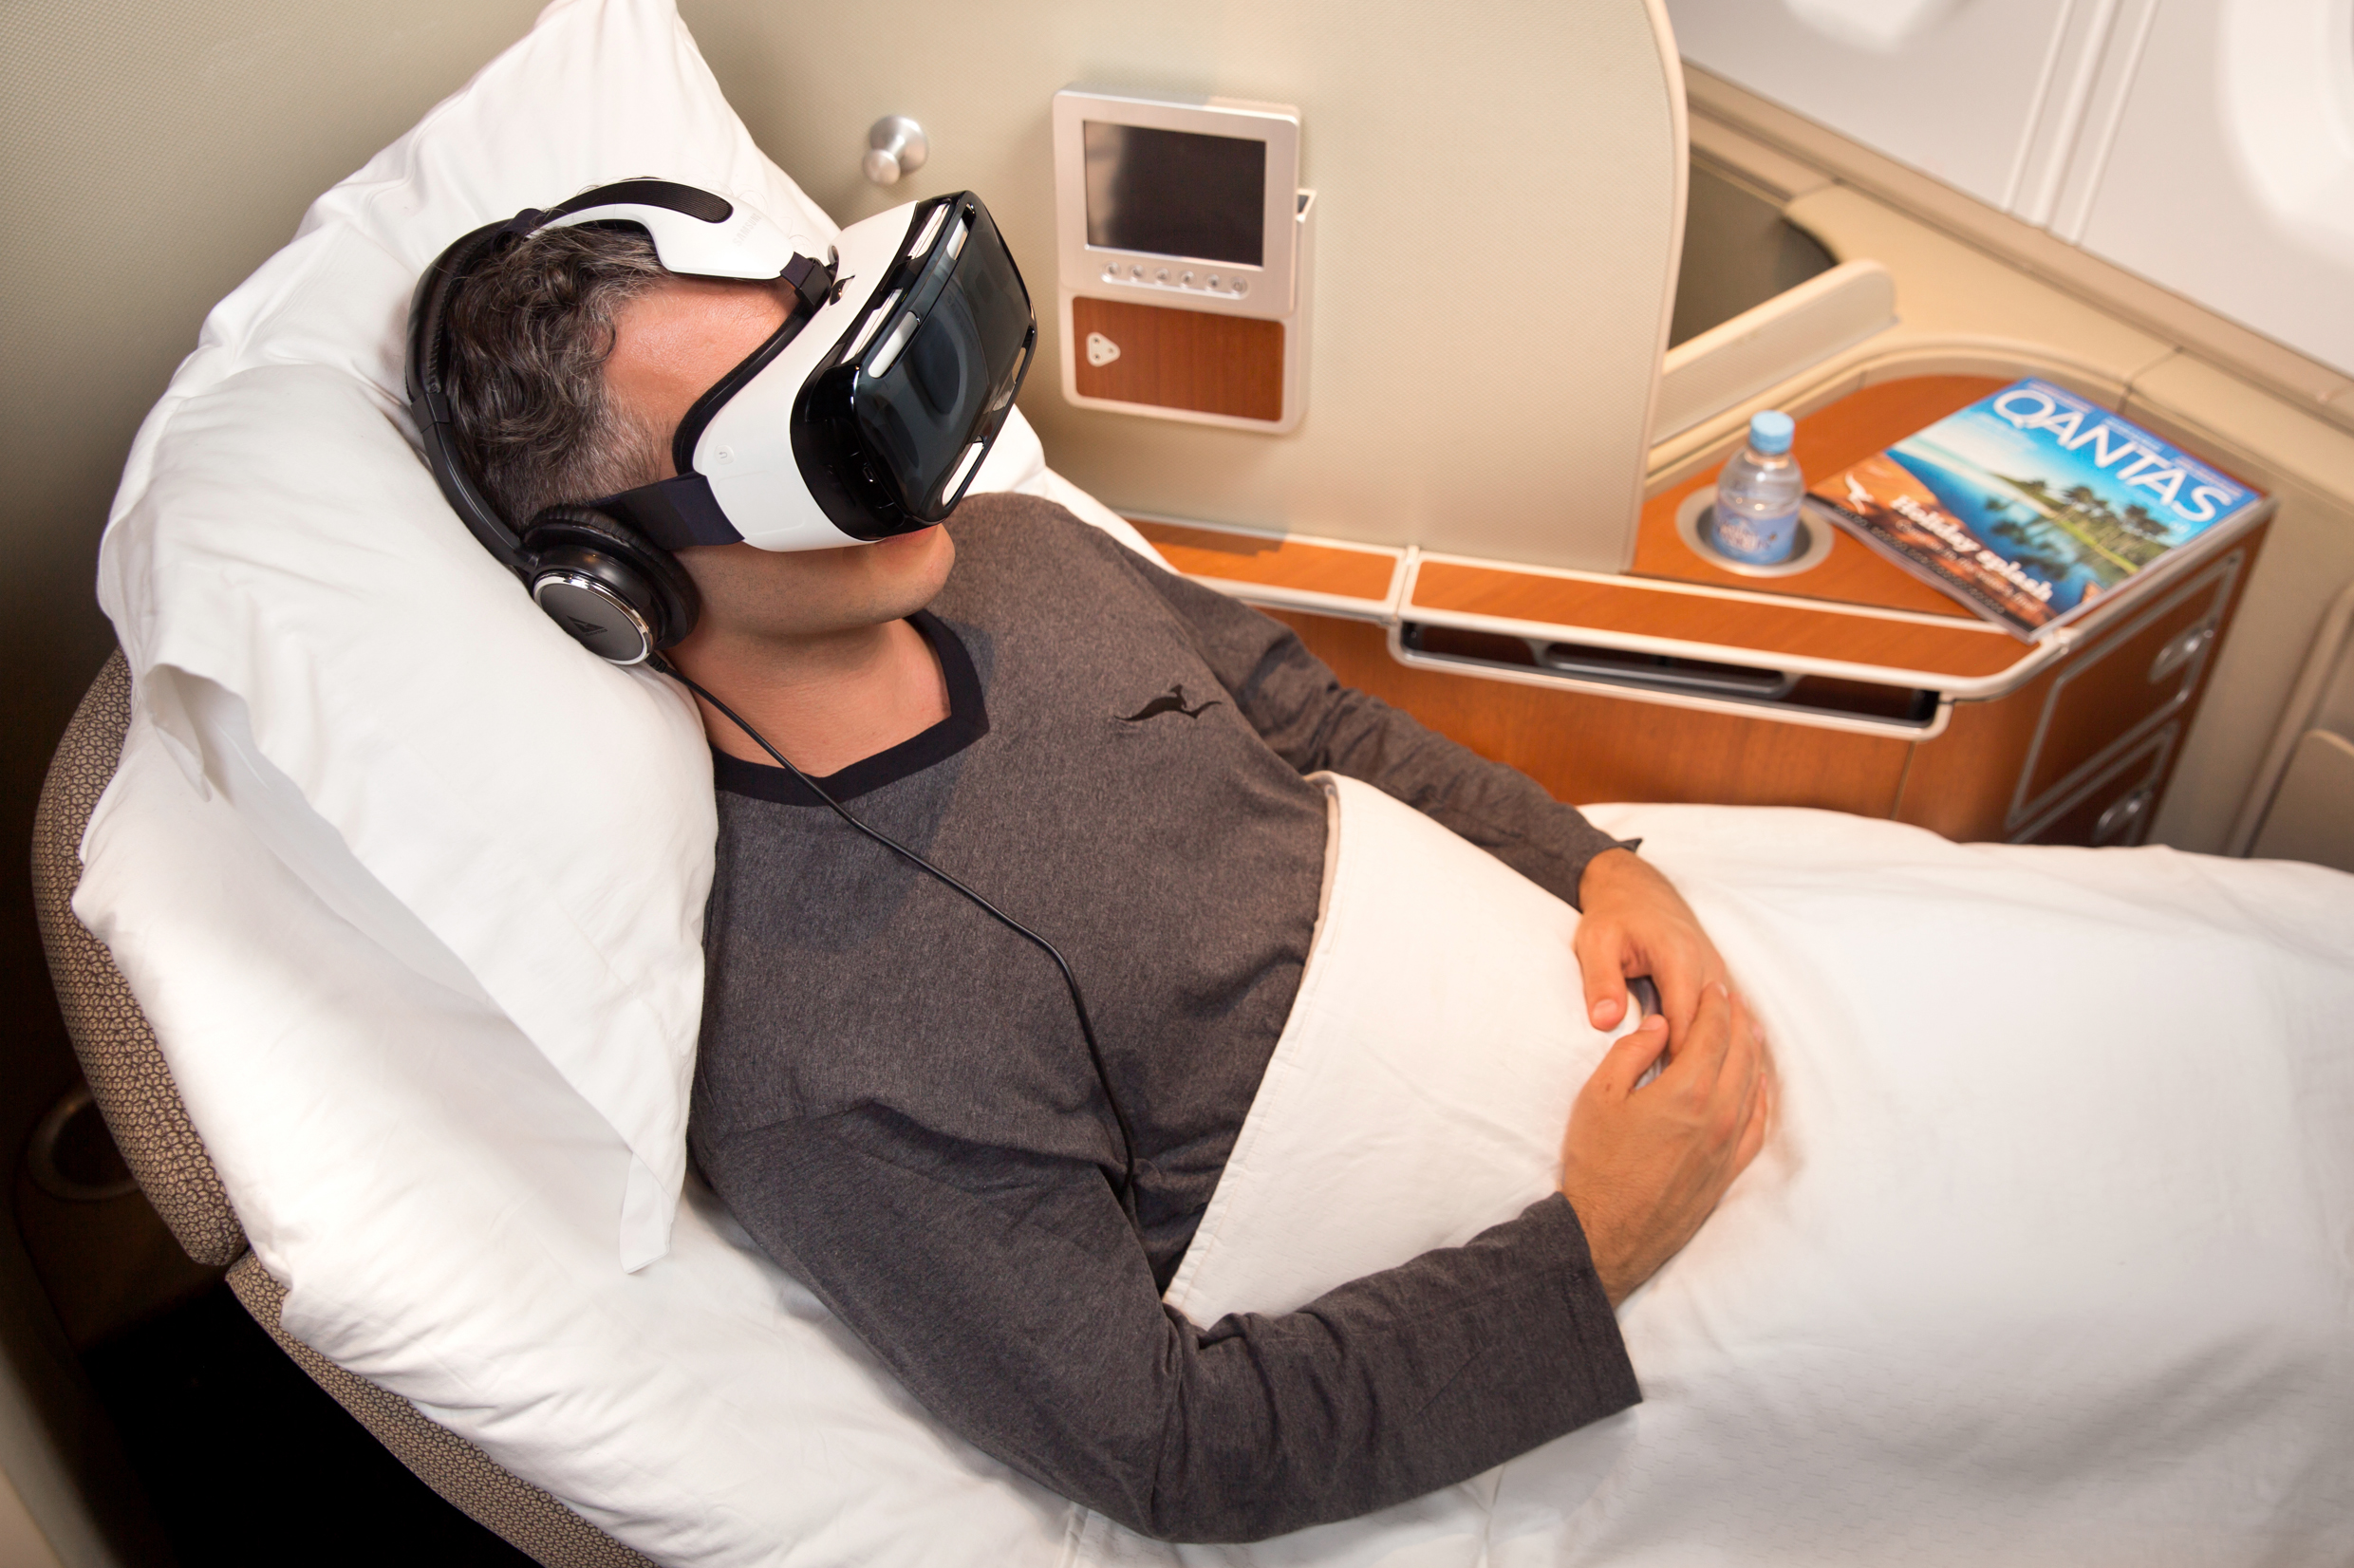 Qantas together with Samsung Electronics Australia has launched a new trial entertainment service that uses virtual reality technology to give customers a spectacular 3D experience. Source: Qantas.